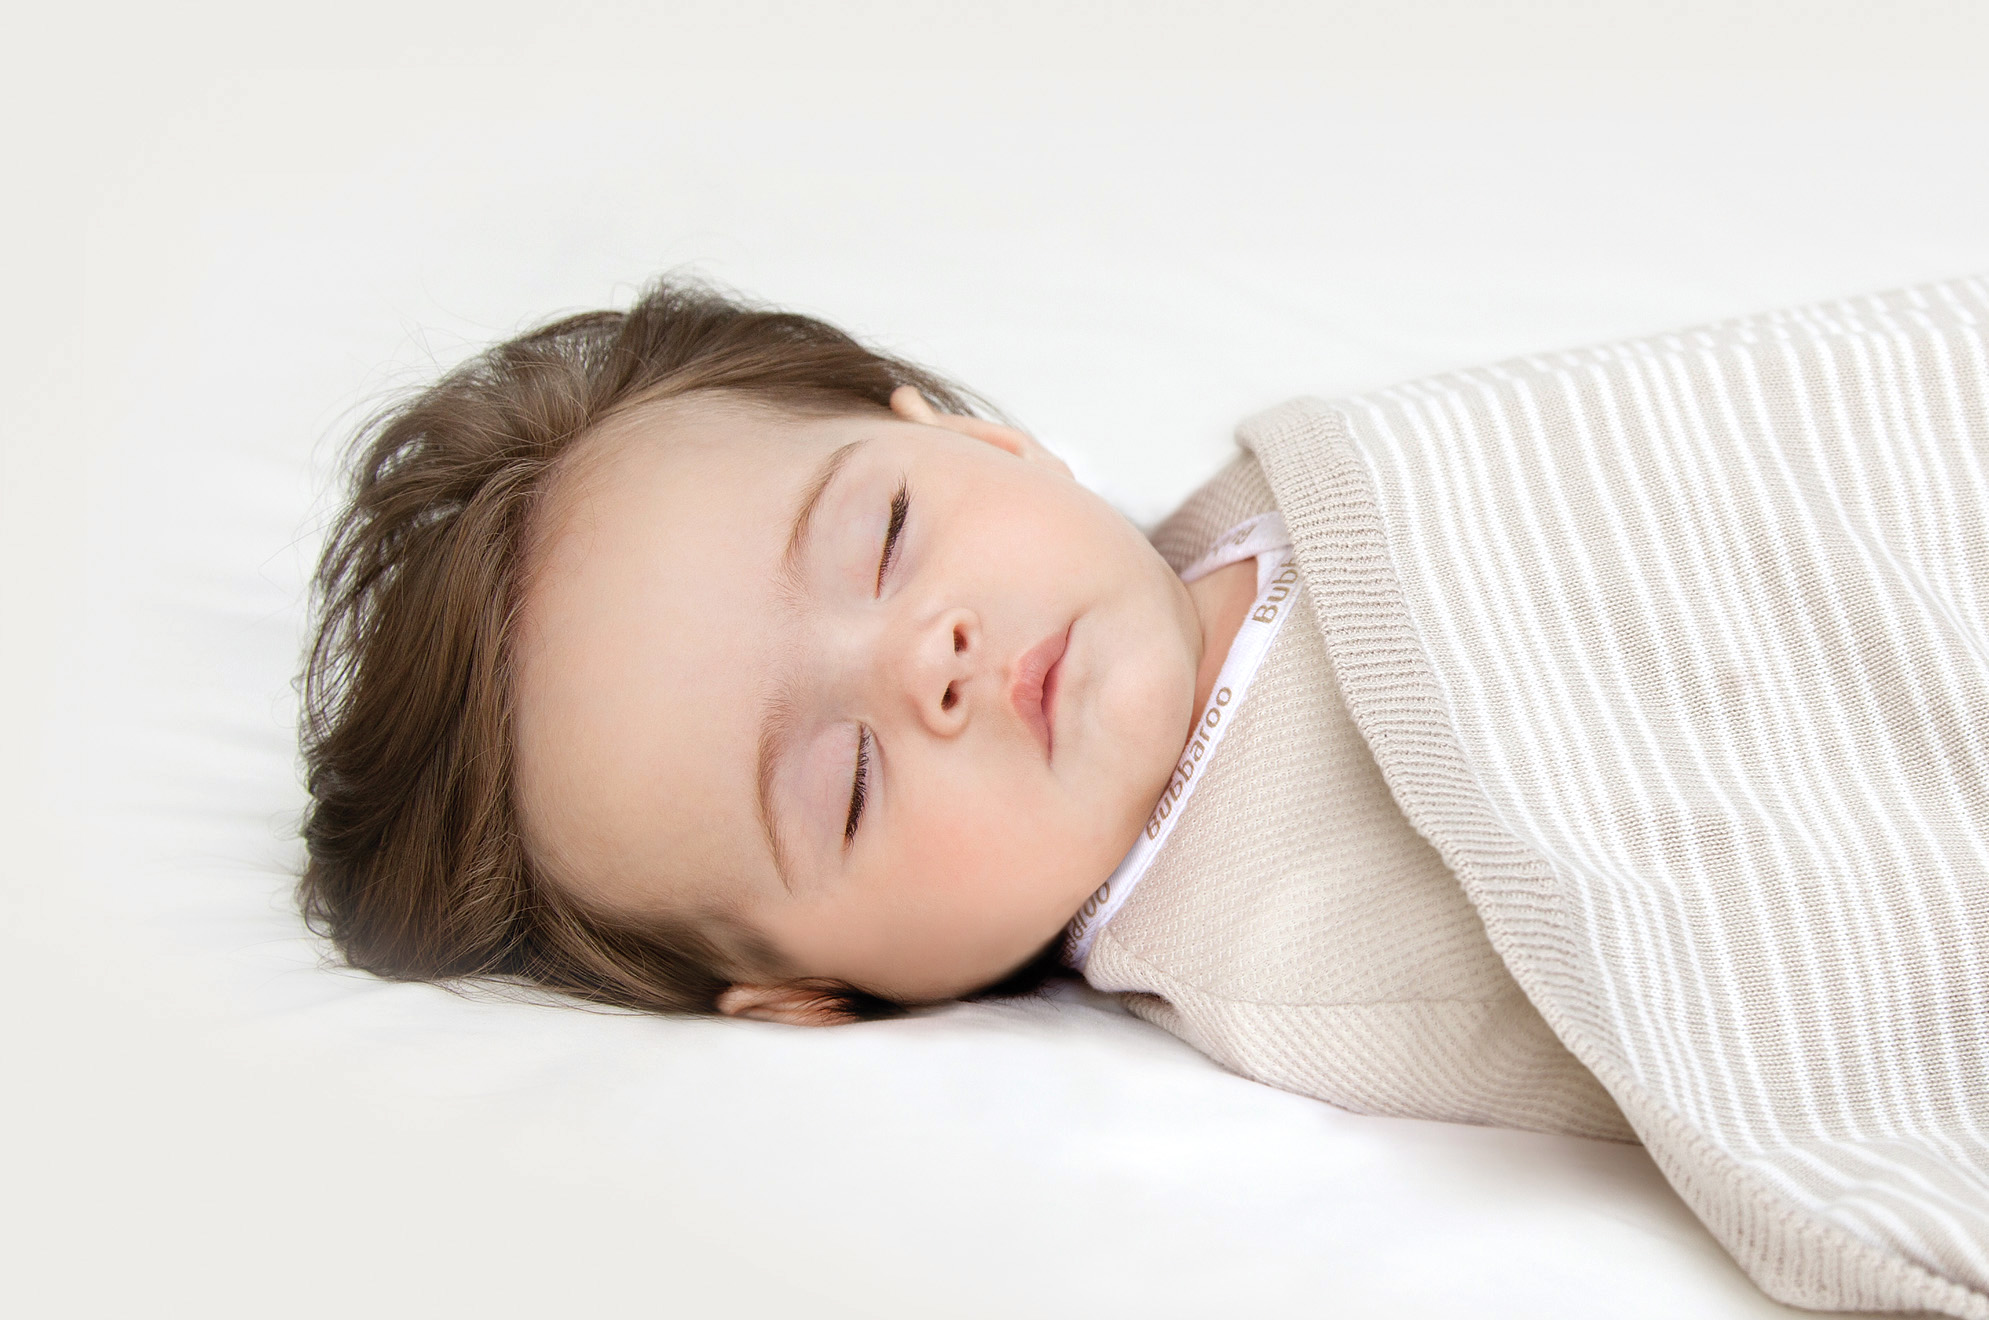 Baby just right for sleep - not too hot or too cold